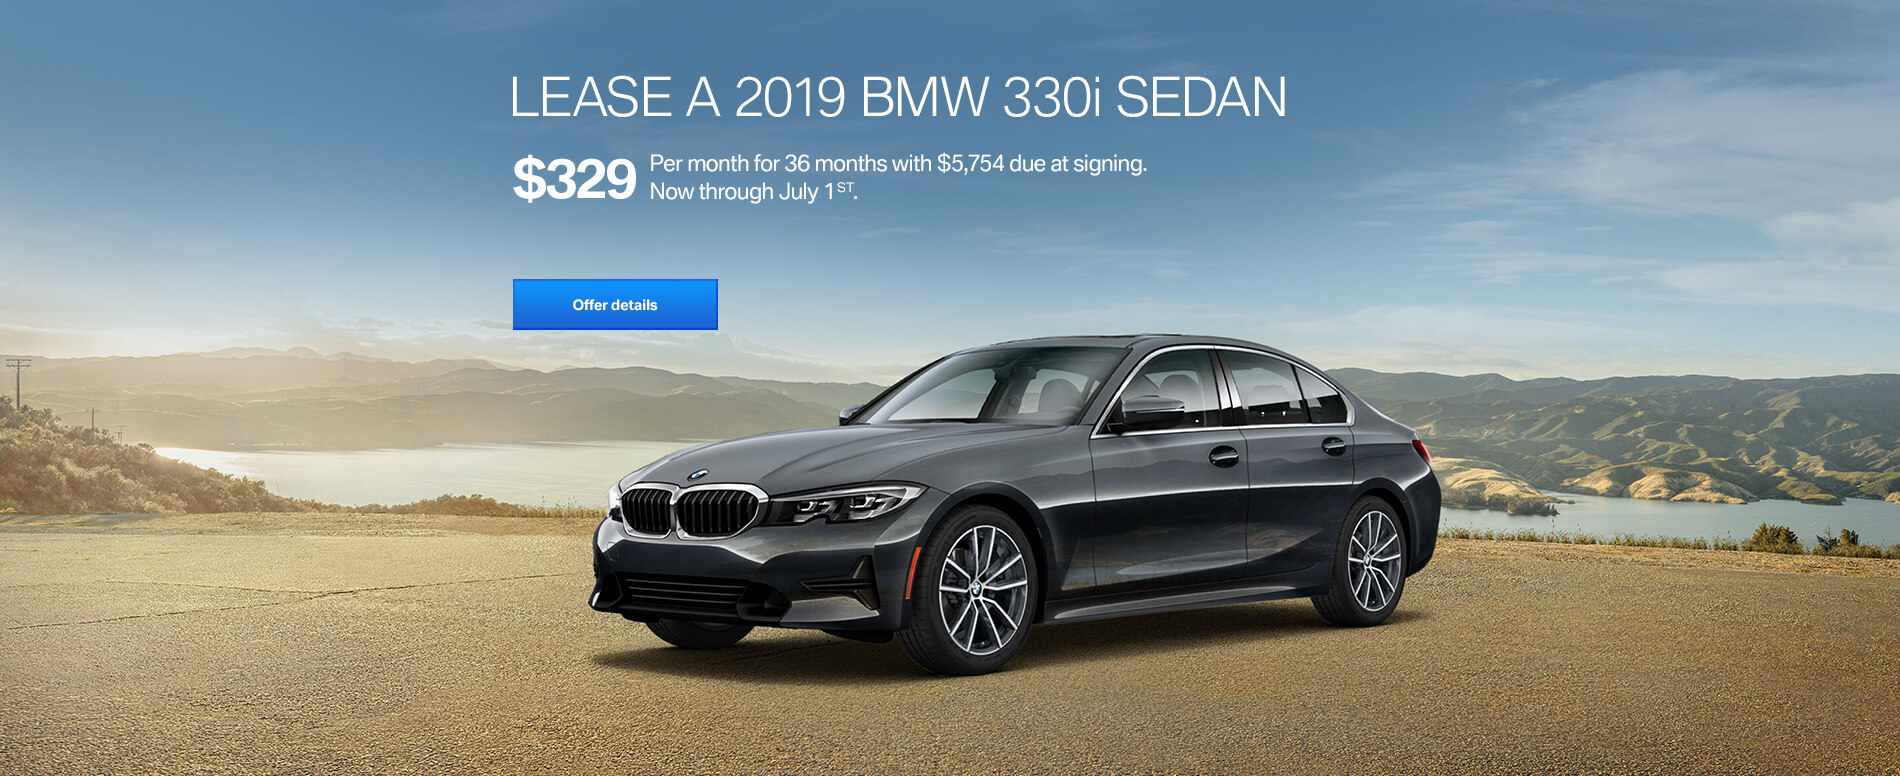 Lease A 2019 Bmw 330i Xdrive For 429 Month 36 Months With